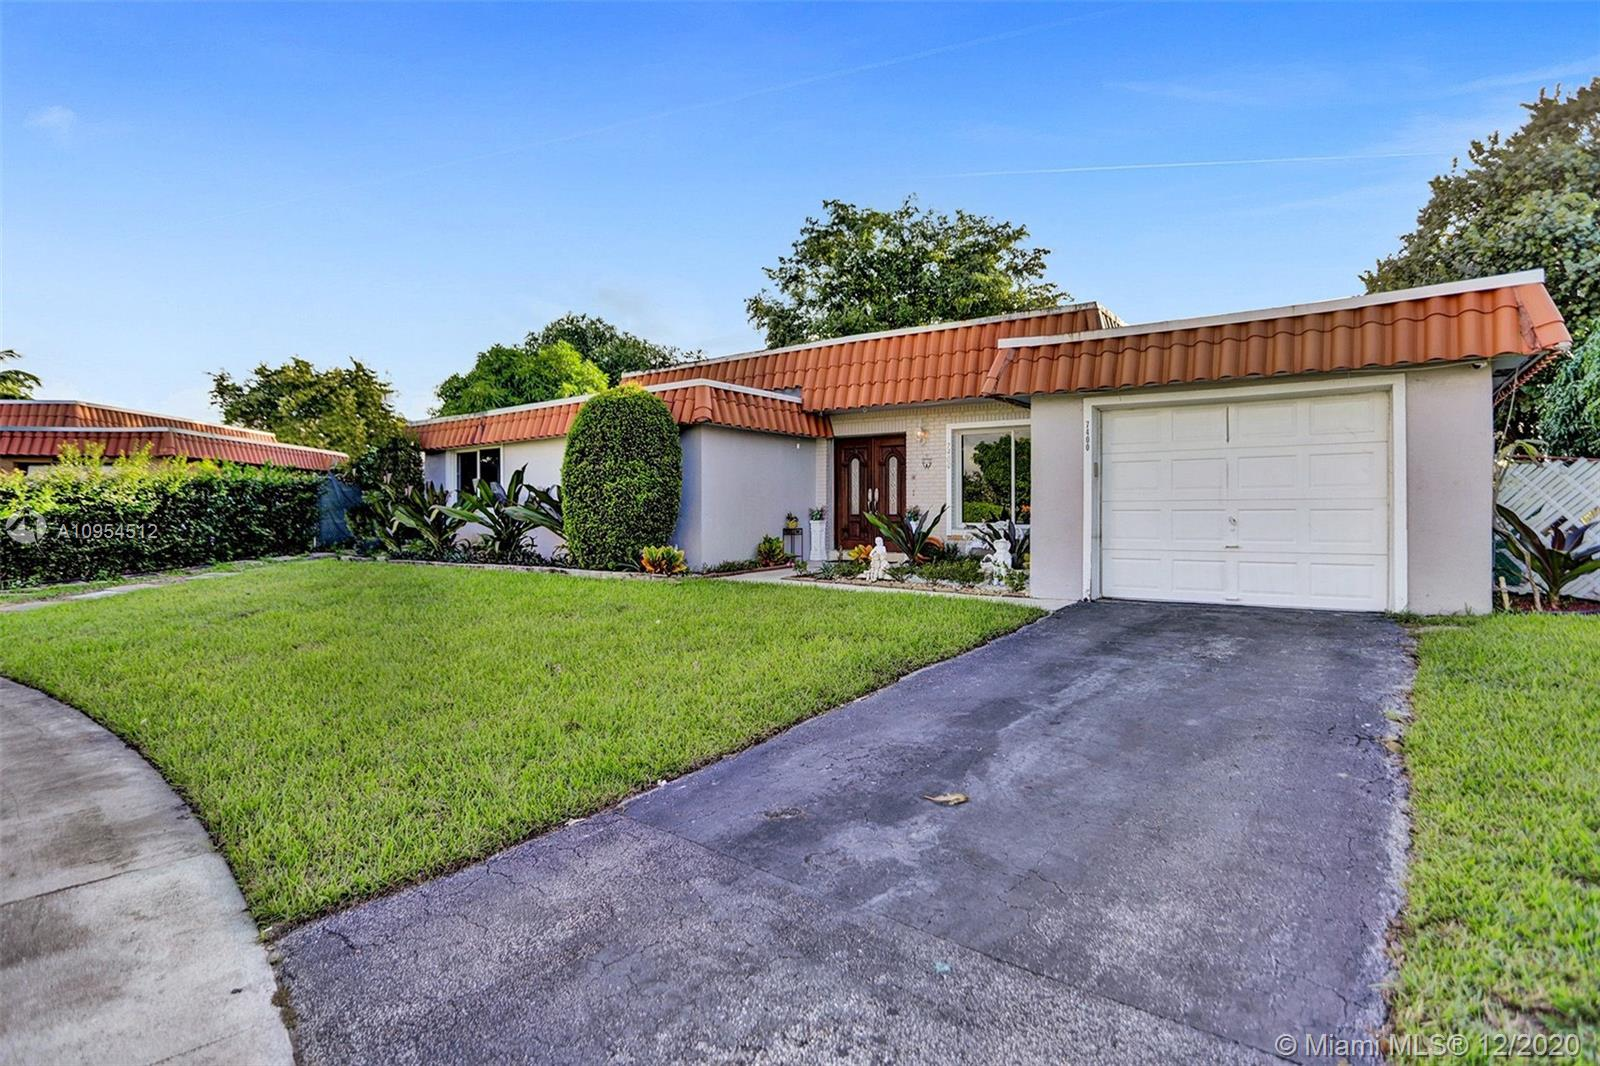 This oversized corner lot home is completely remodeled head to toe and it is ready to be shown today! This is a 4 bedroom 3 bath in the heart of Tamarac close to the turnpike, and 75. The most financially reasonable home in the market with tons and tons of upgrades to be mentioned. The home is move in ready with an over enlarged master bedroom with a secret room. The home has no back neighbors and it backs a the community park and pool. Ready for any large or small family!